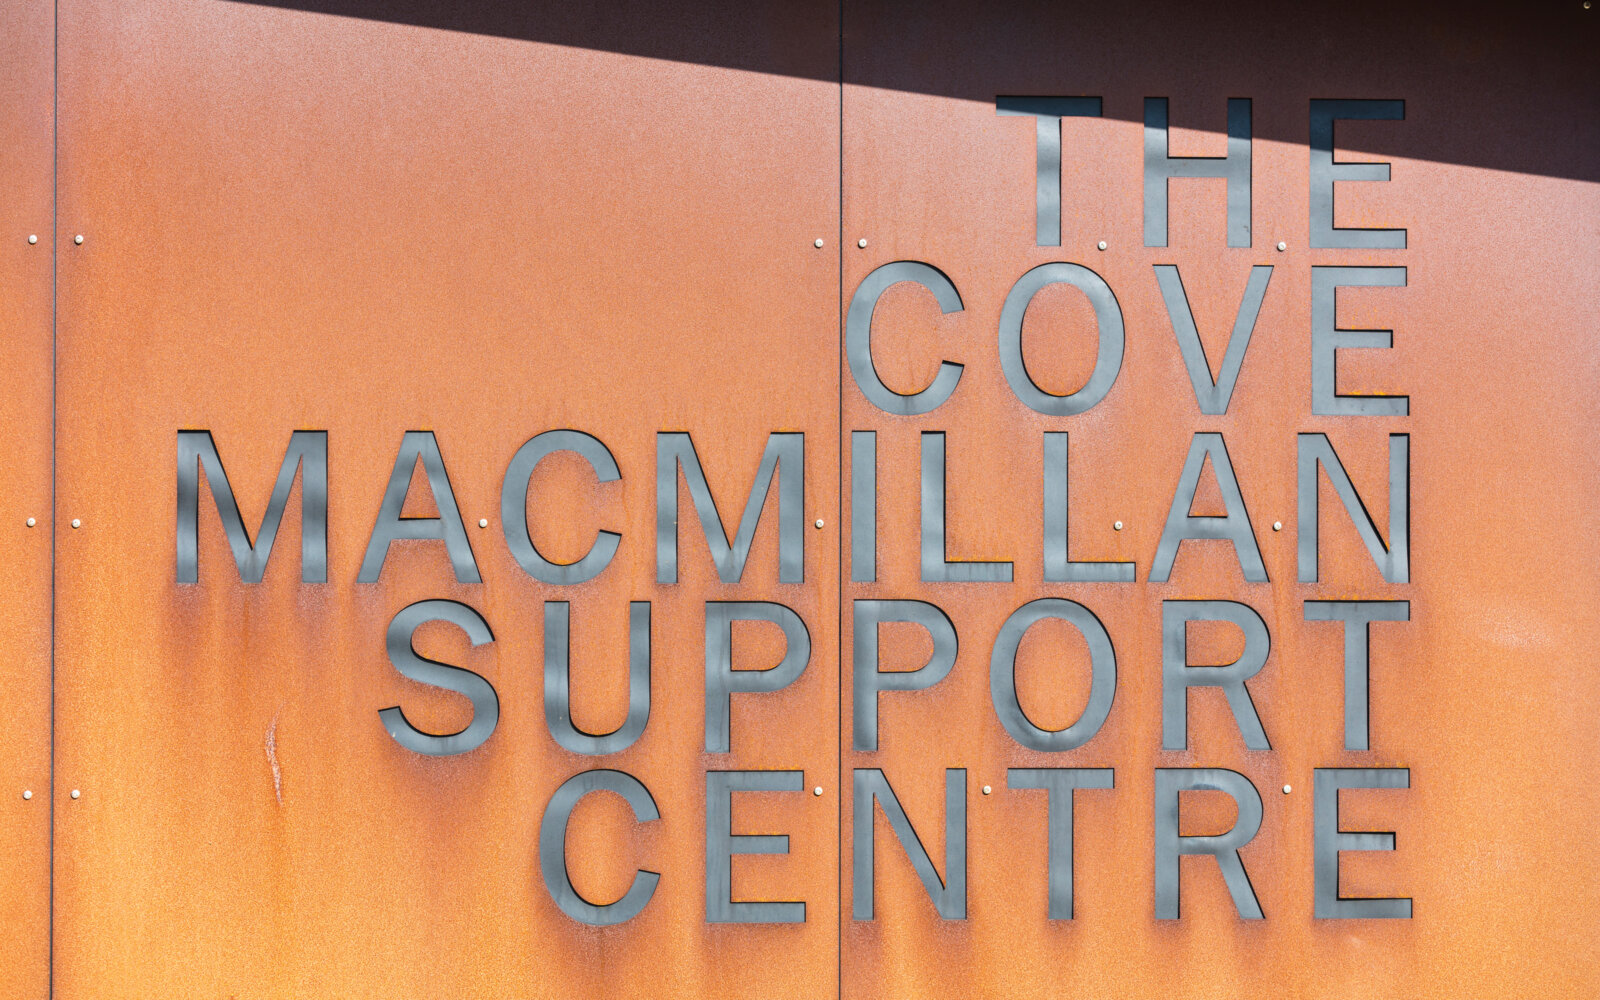 The Cove Macmillan Cancer Support Centre signage